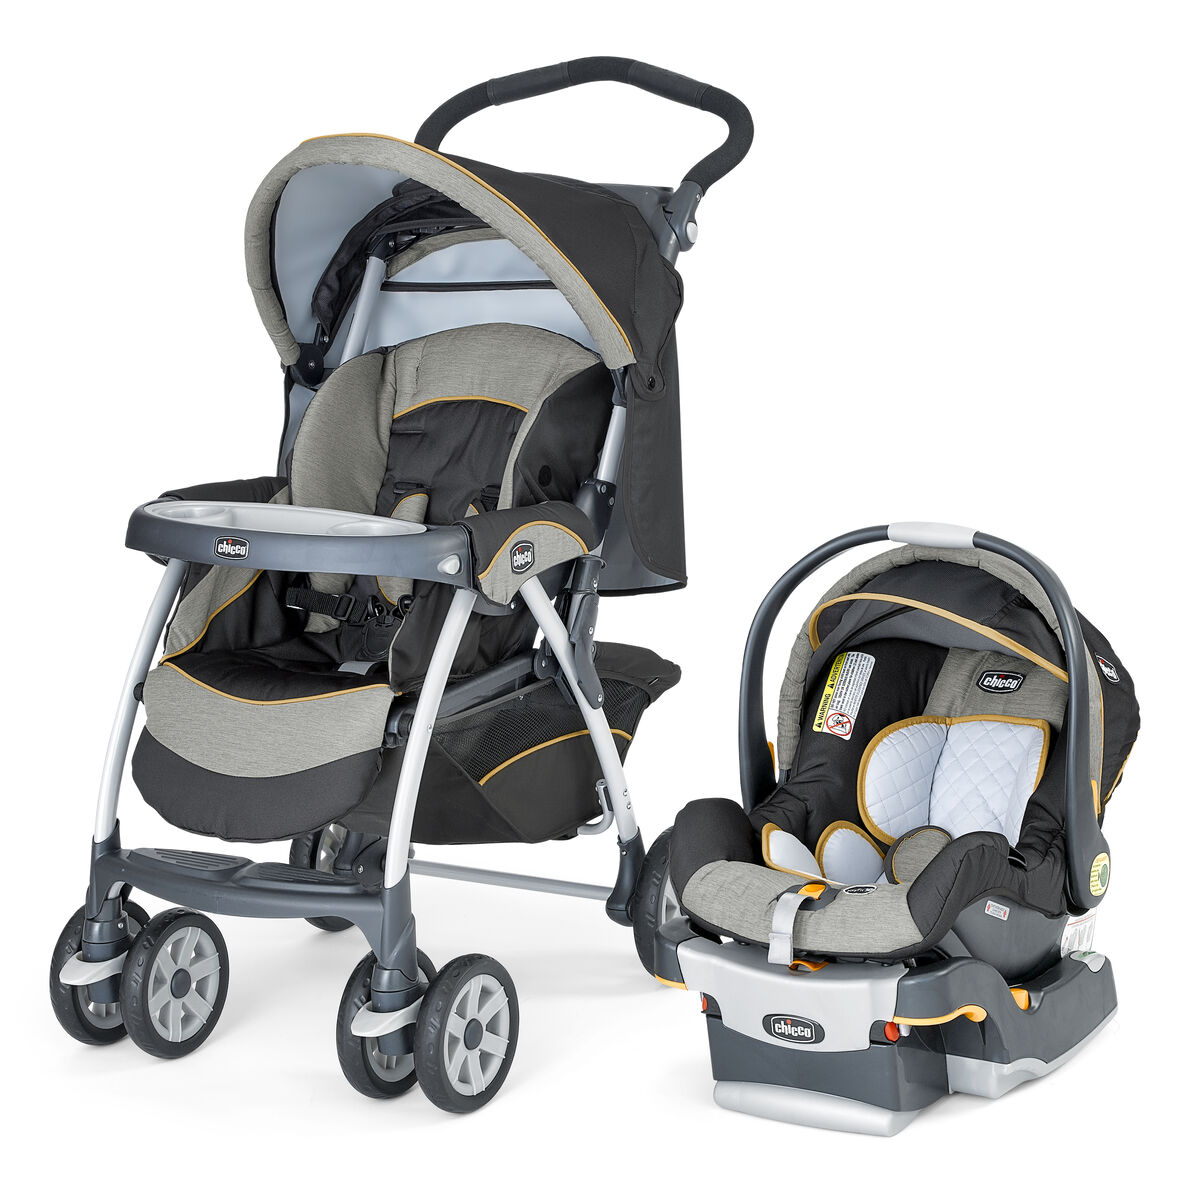 chicco cortina keyfit 30 travel system sedona. Black Bedroom Furniture Sets. Home Design Ideas